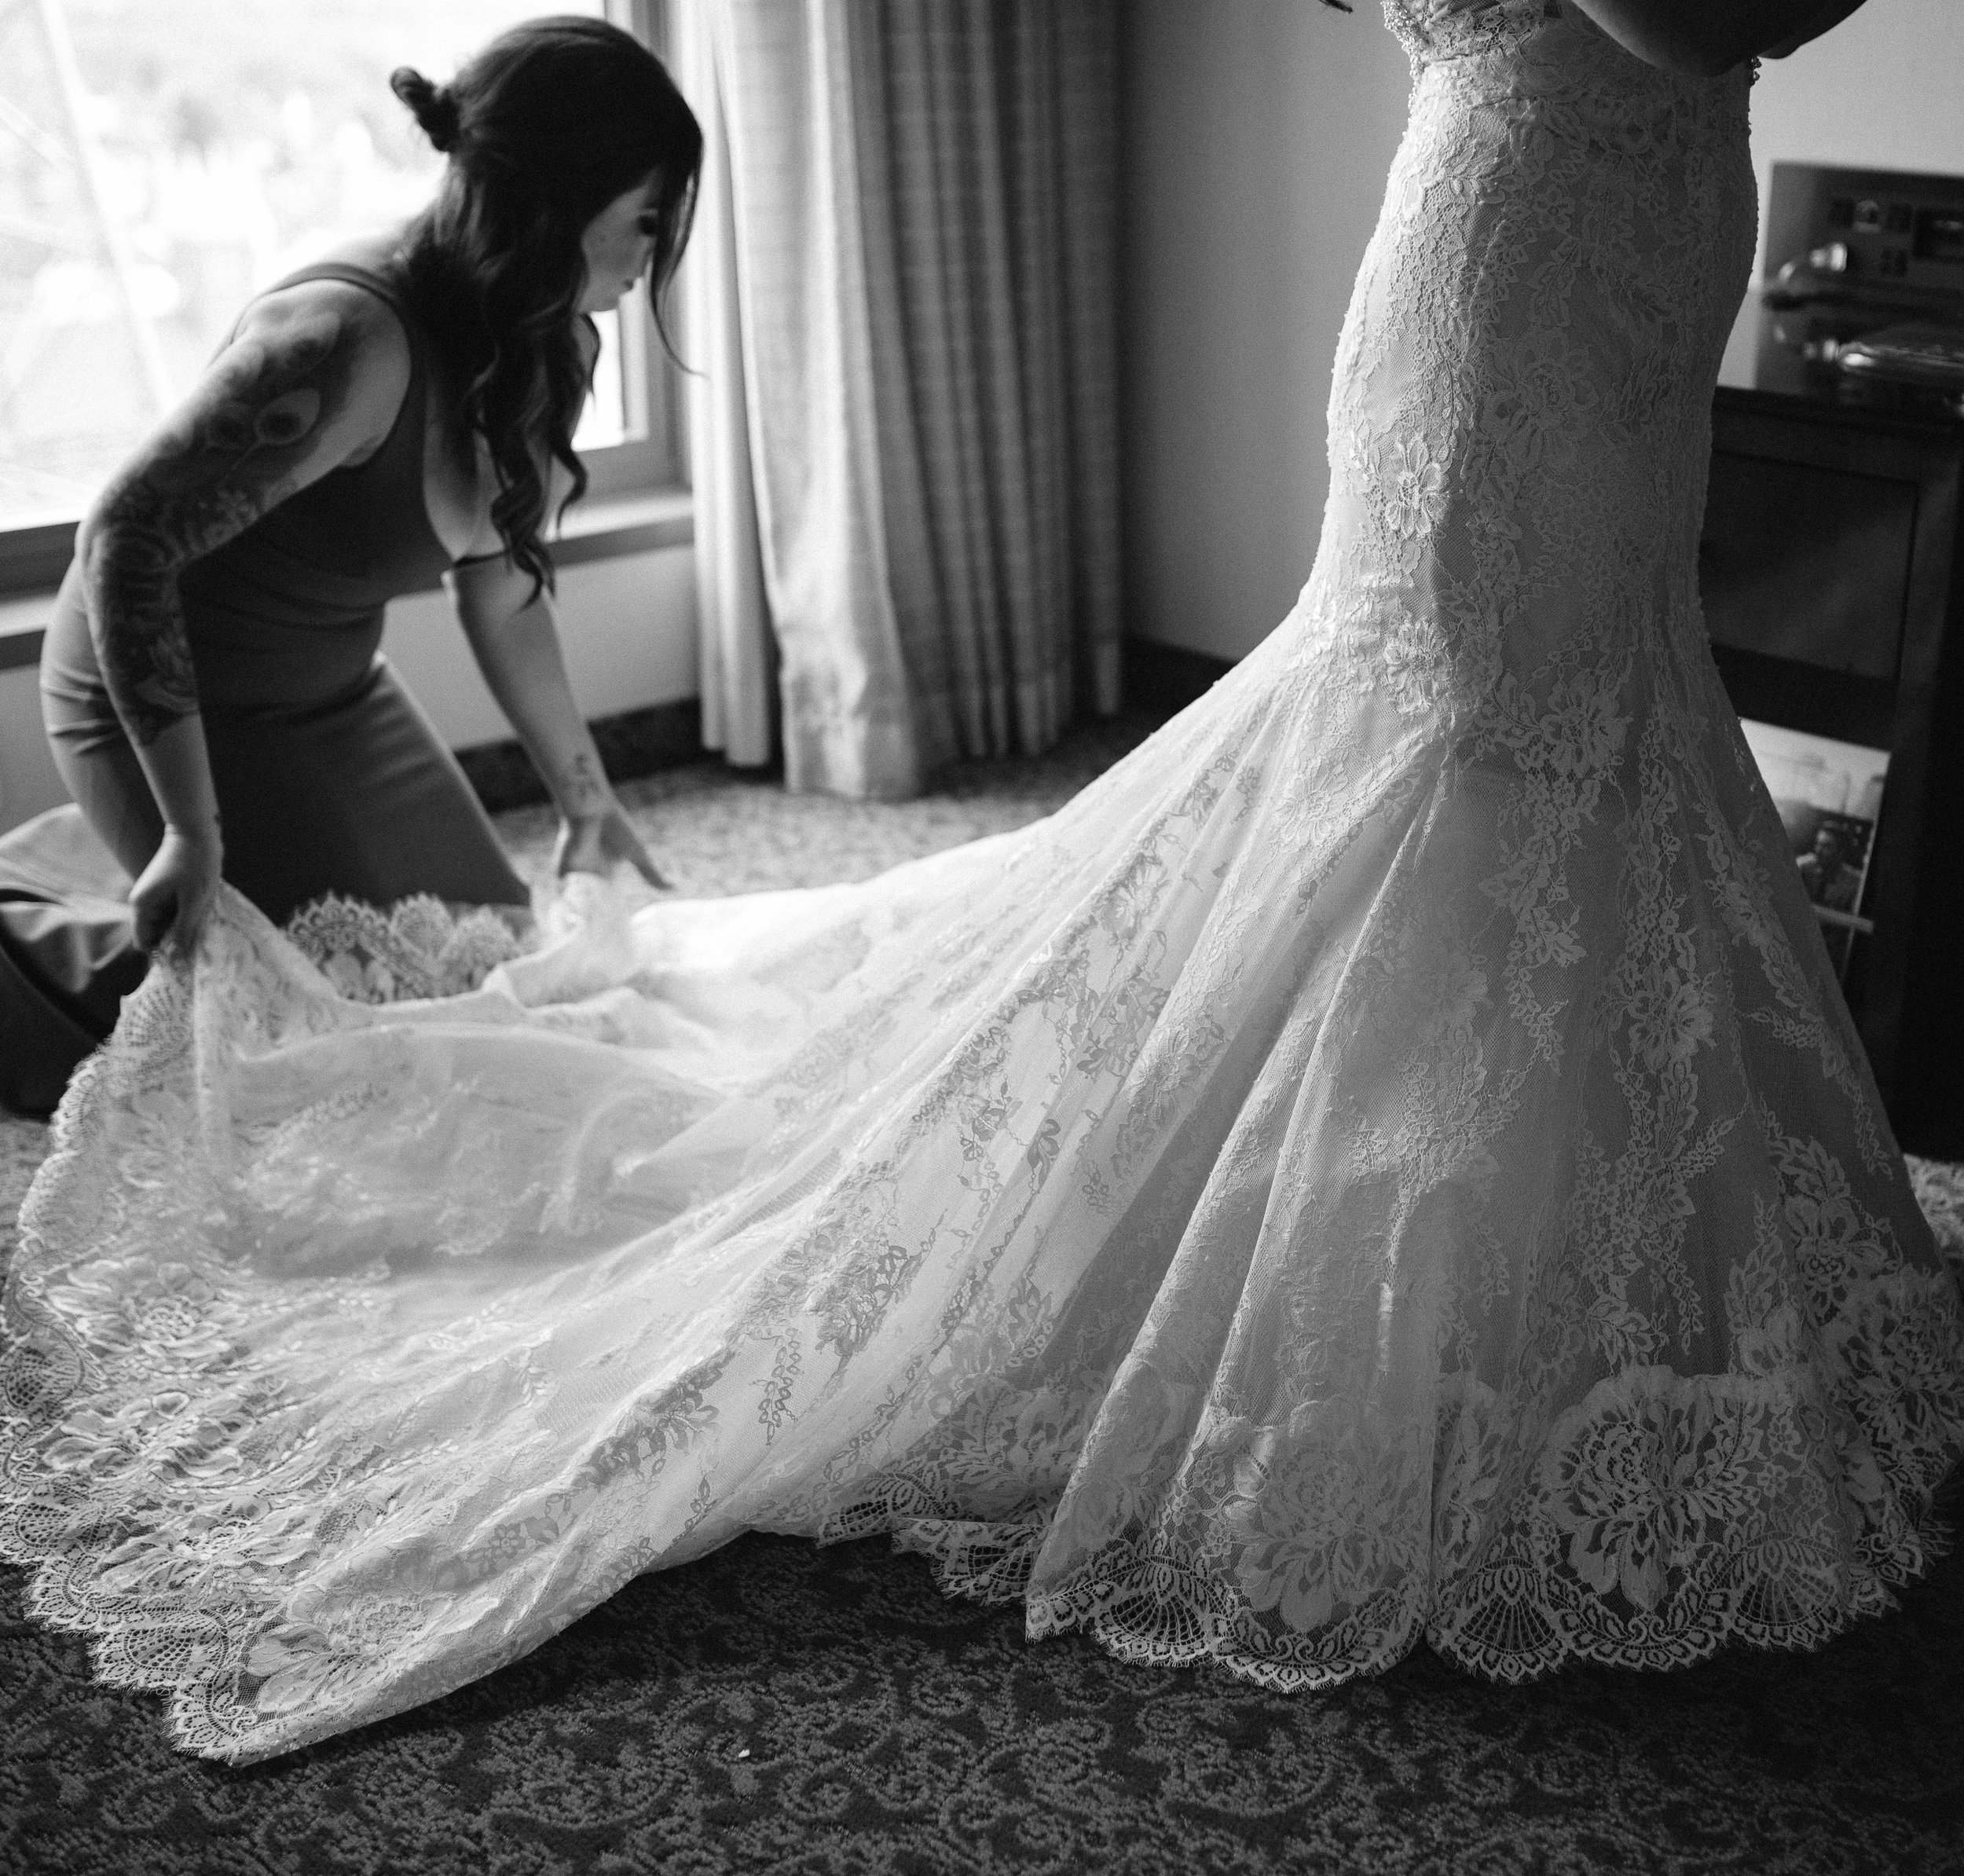 agpcollective_barlettowedding_excelsiorlancaster_gettingready-8644-2.jpg